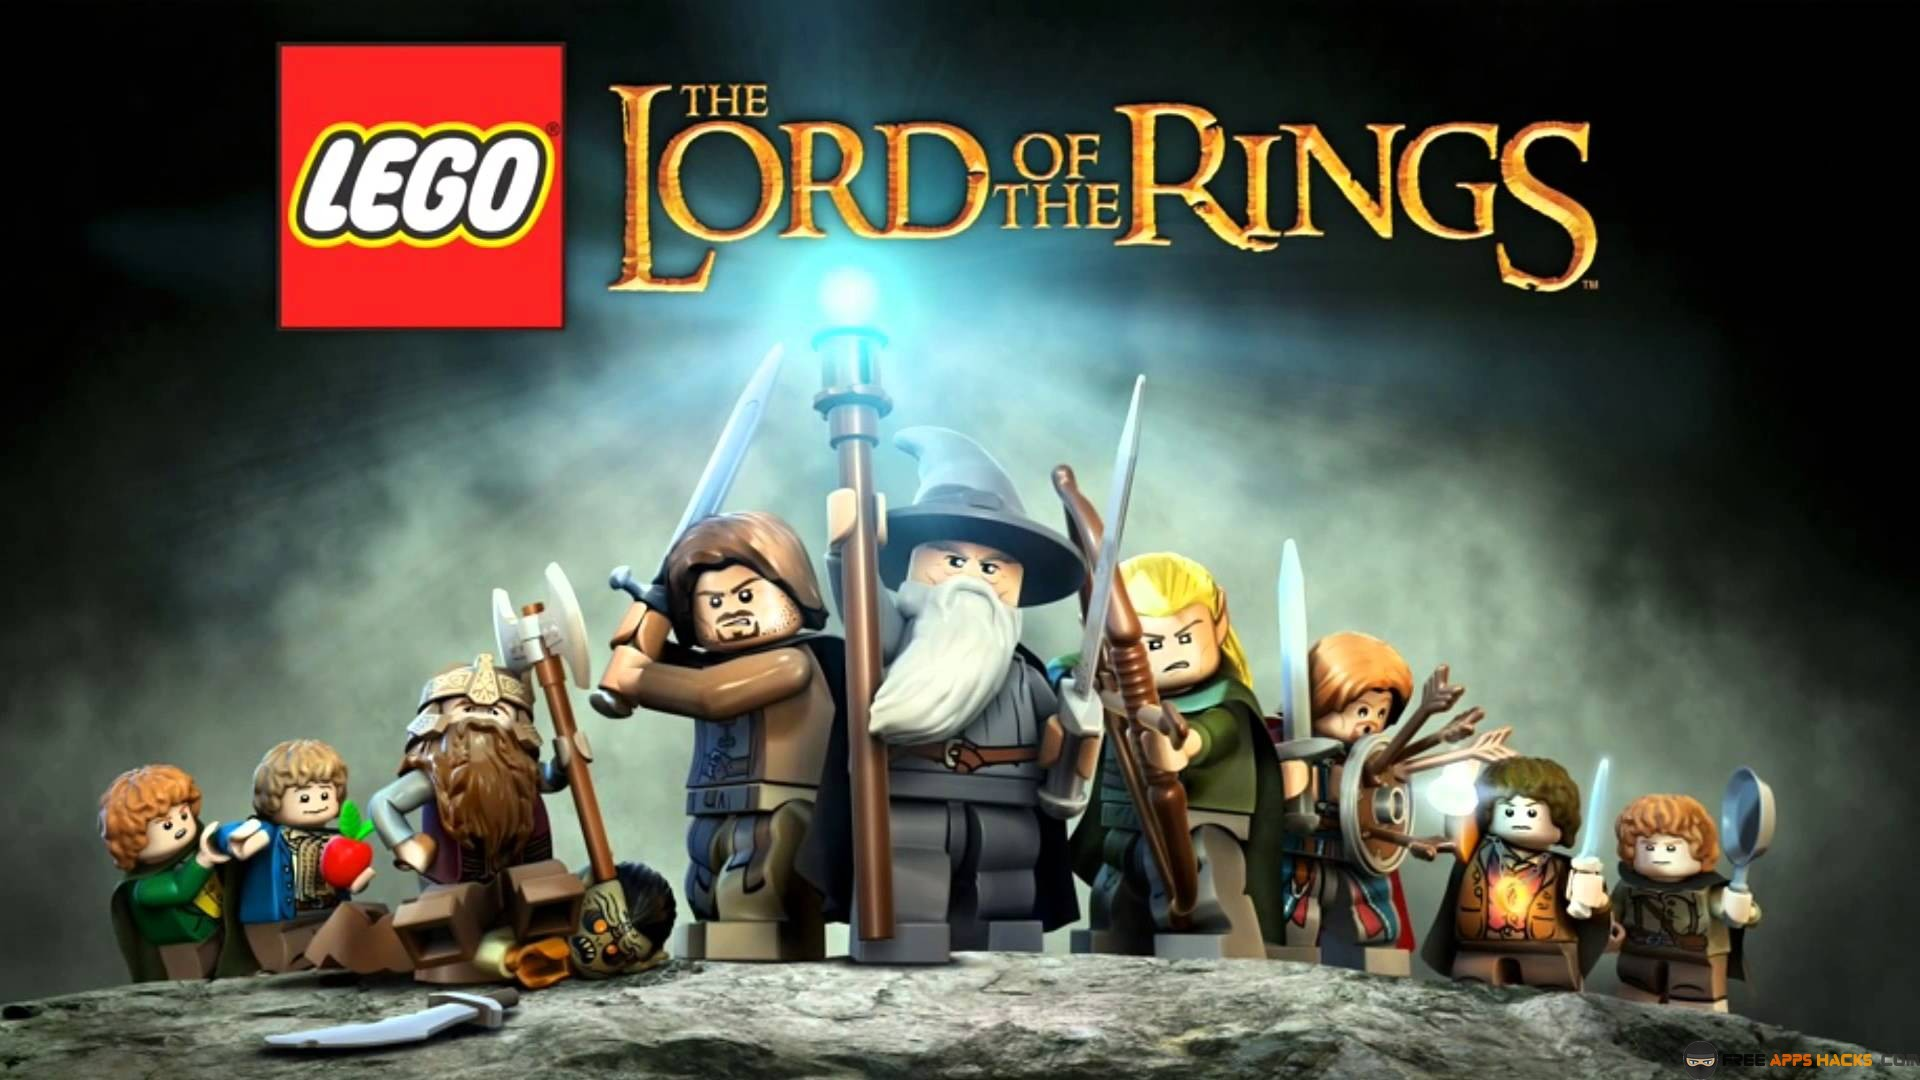 LEGO The Lord Of The Rings 2018 - Characters, Passwords, Cheat Codes